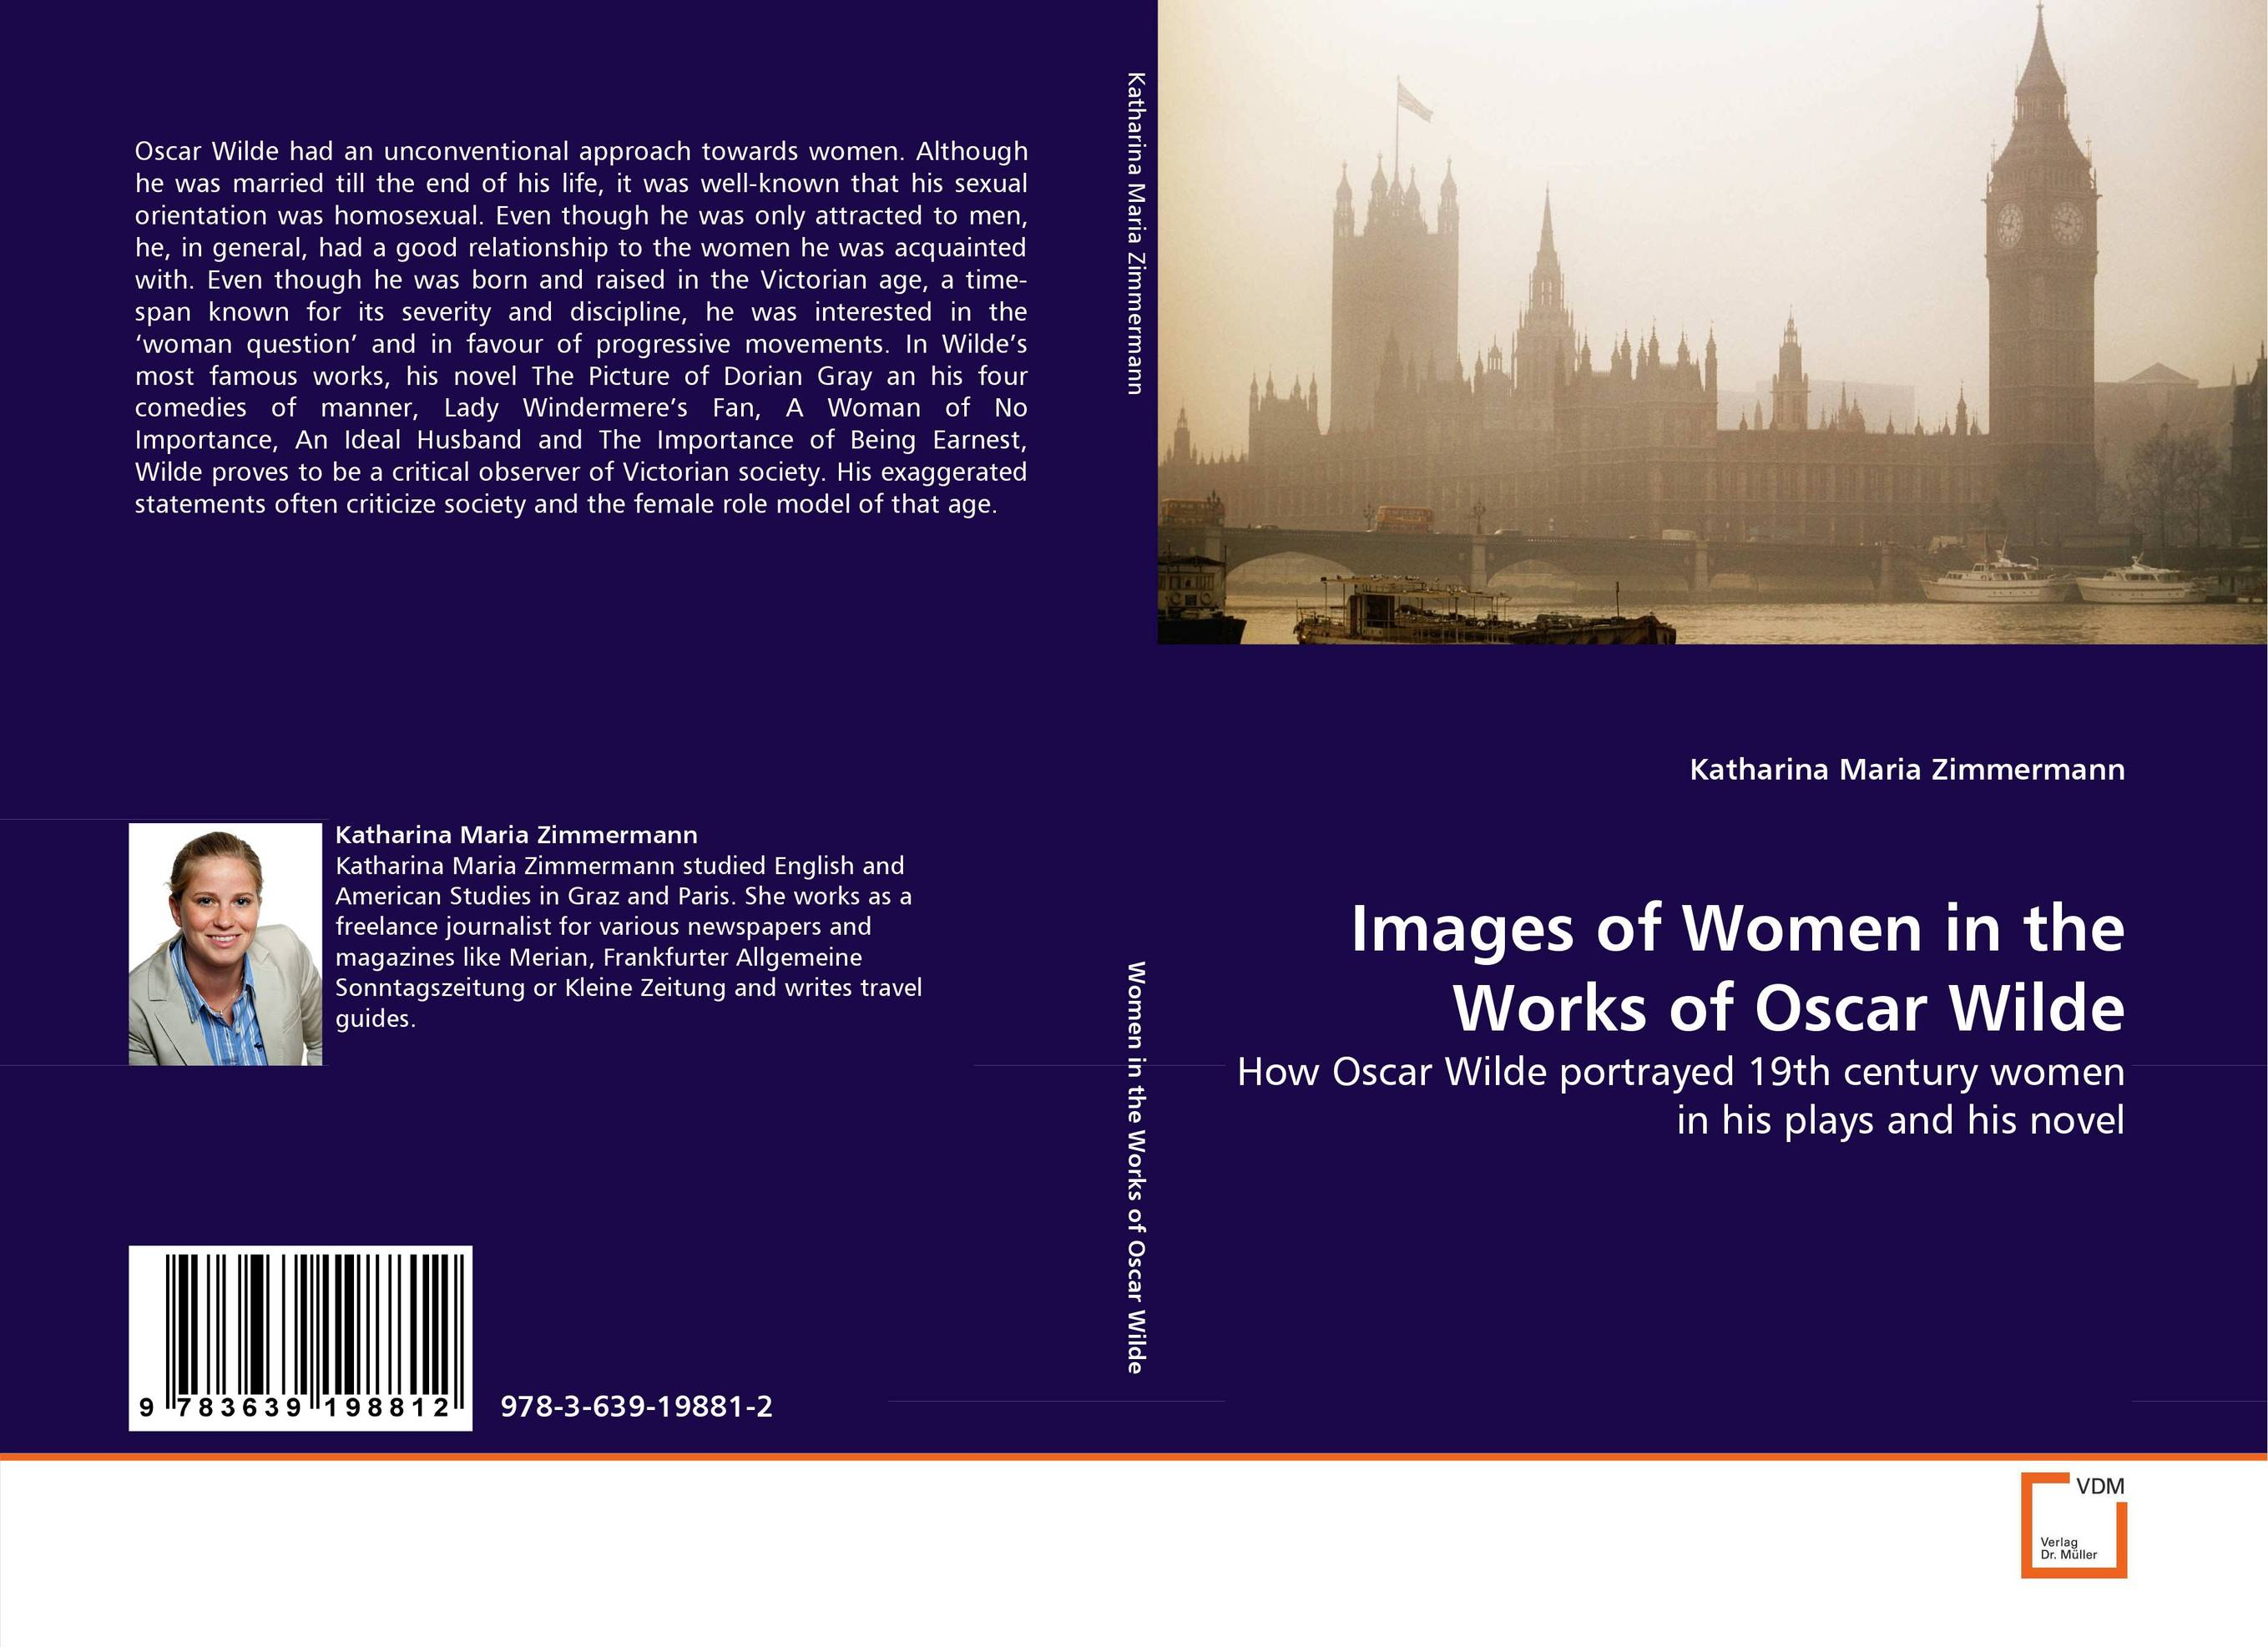 Images of Women in the Works of Oscar Wilde the plays of oscar wilde